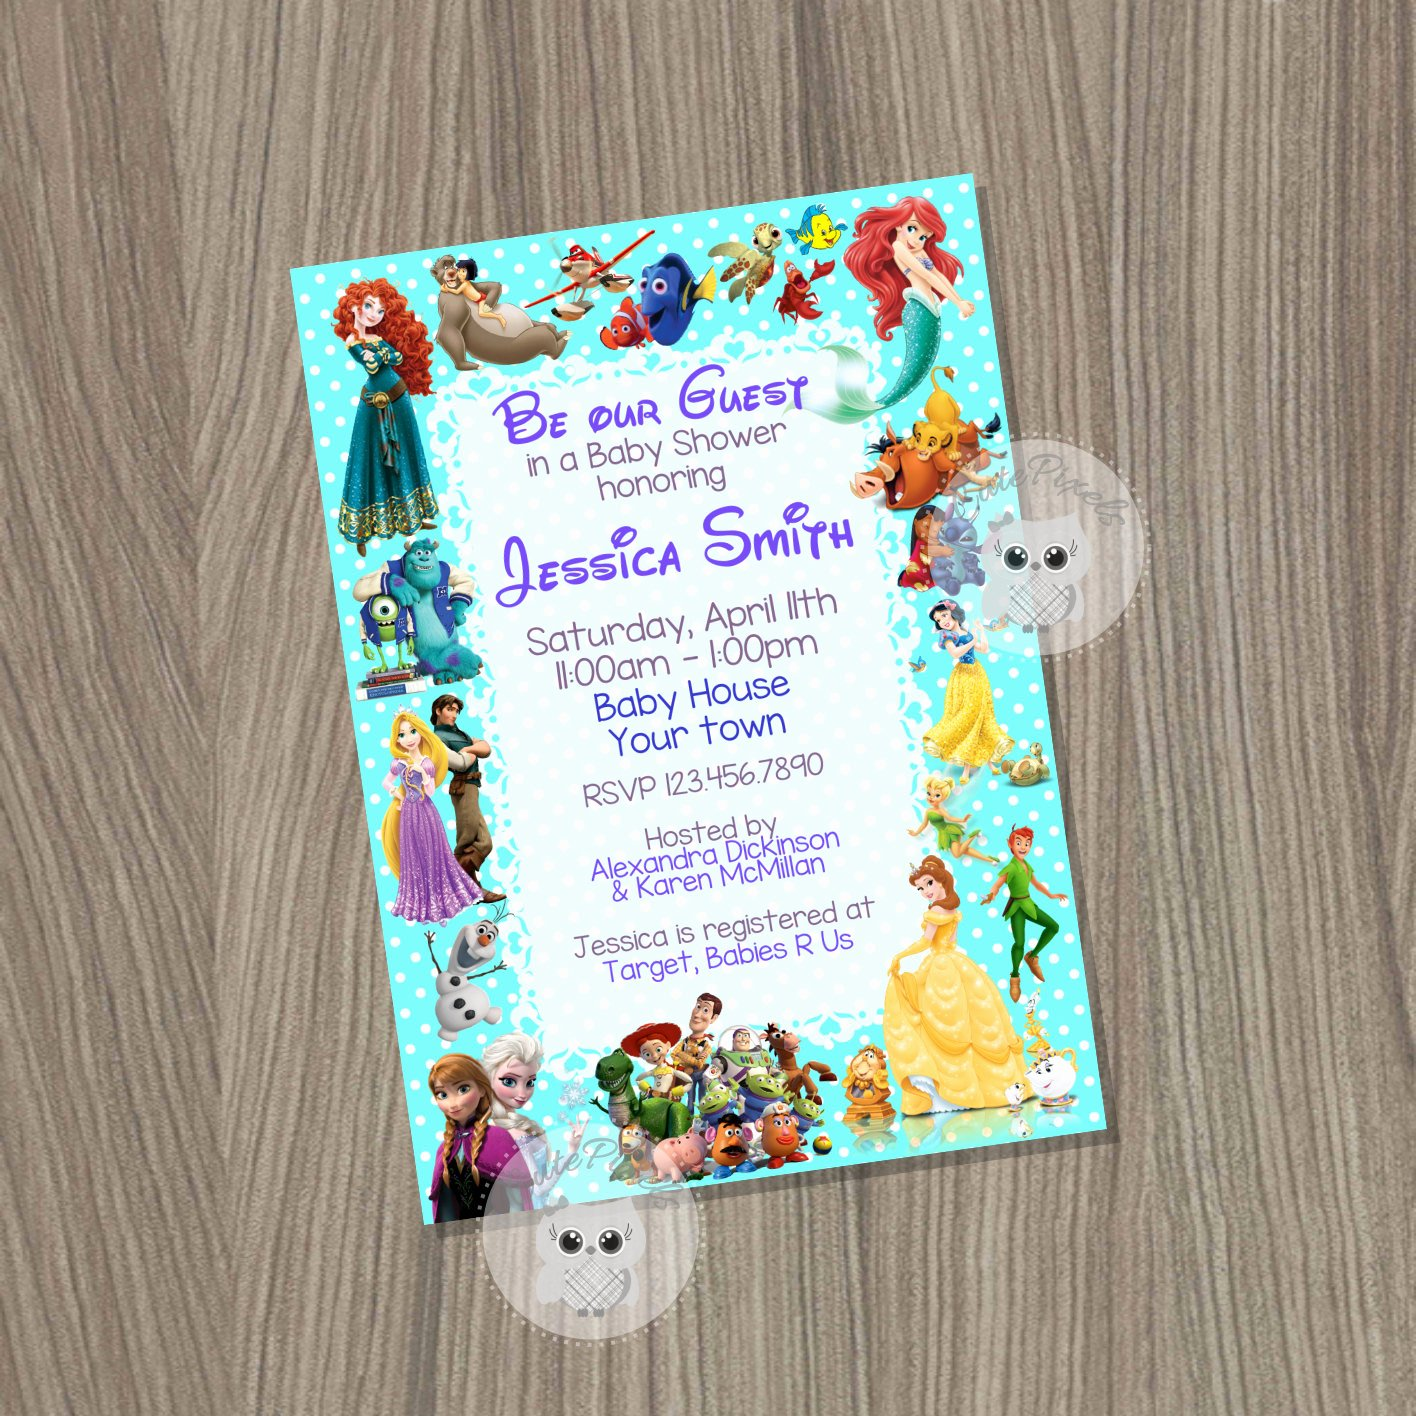 Disney Baby Shower Invitations Lovely Baby Shower Invitation Disney Baby Shower Baby Shower Baby